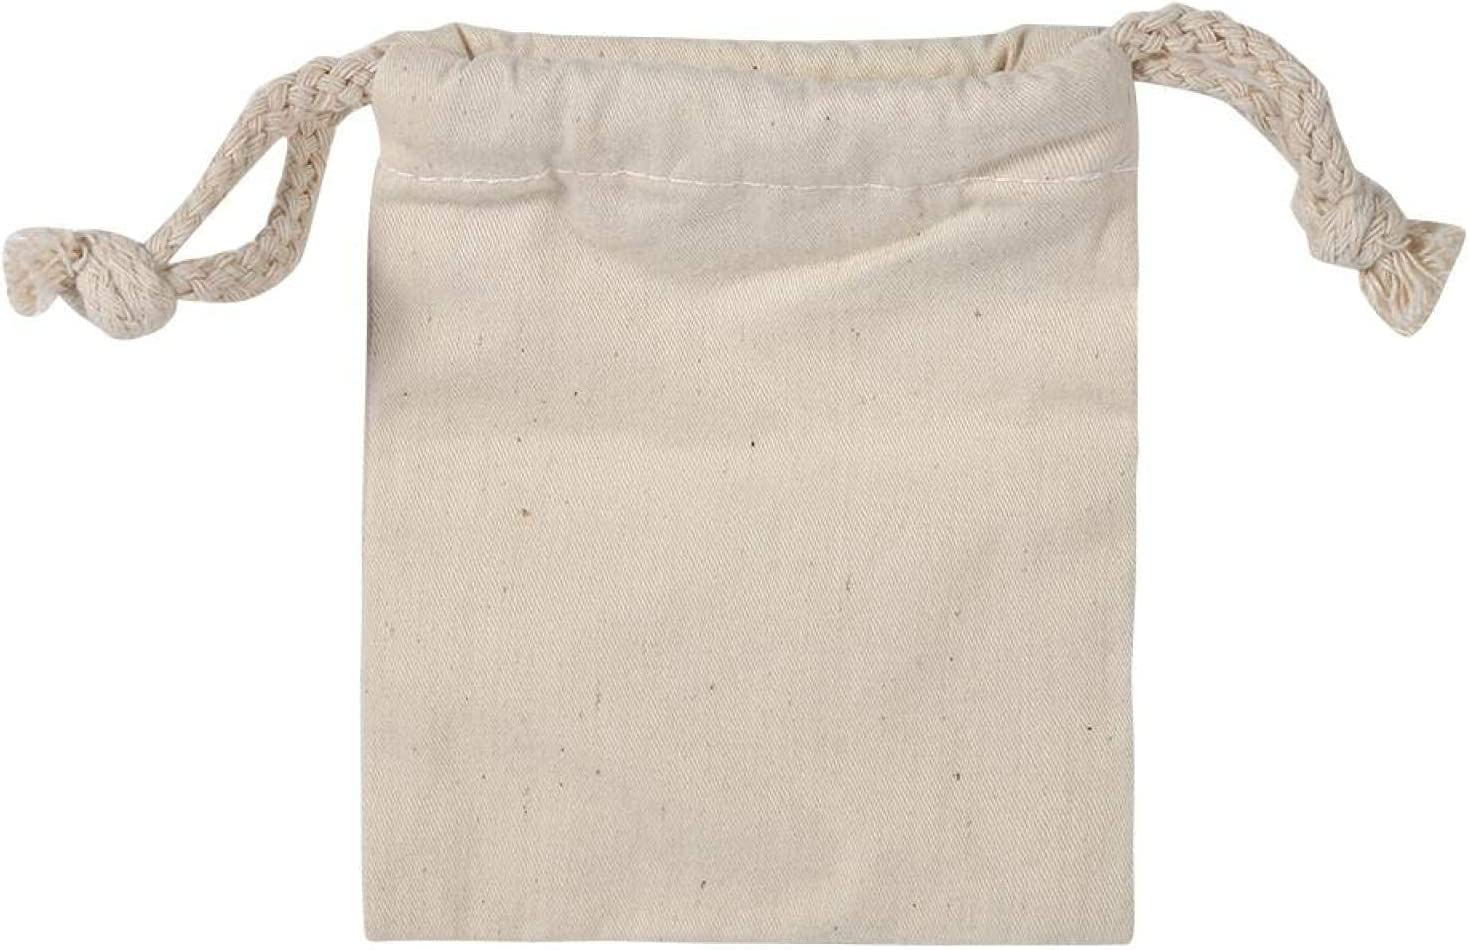 overseas SanZHONGsd Muslin OFFicial Bags with Drawstrings- Reusable f Produce